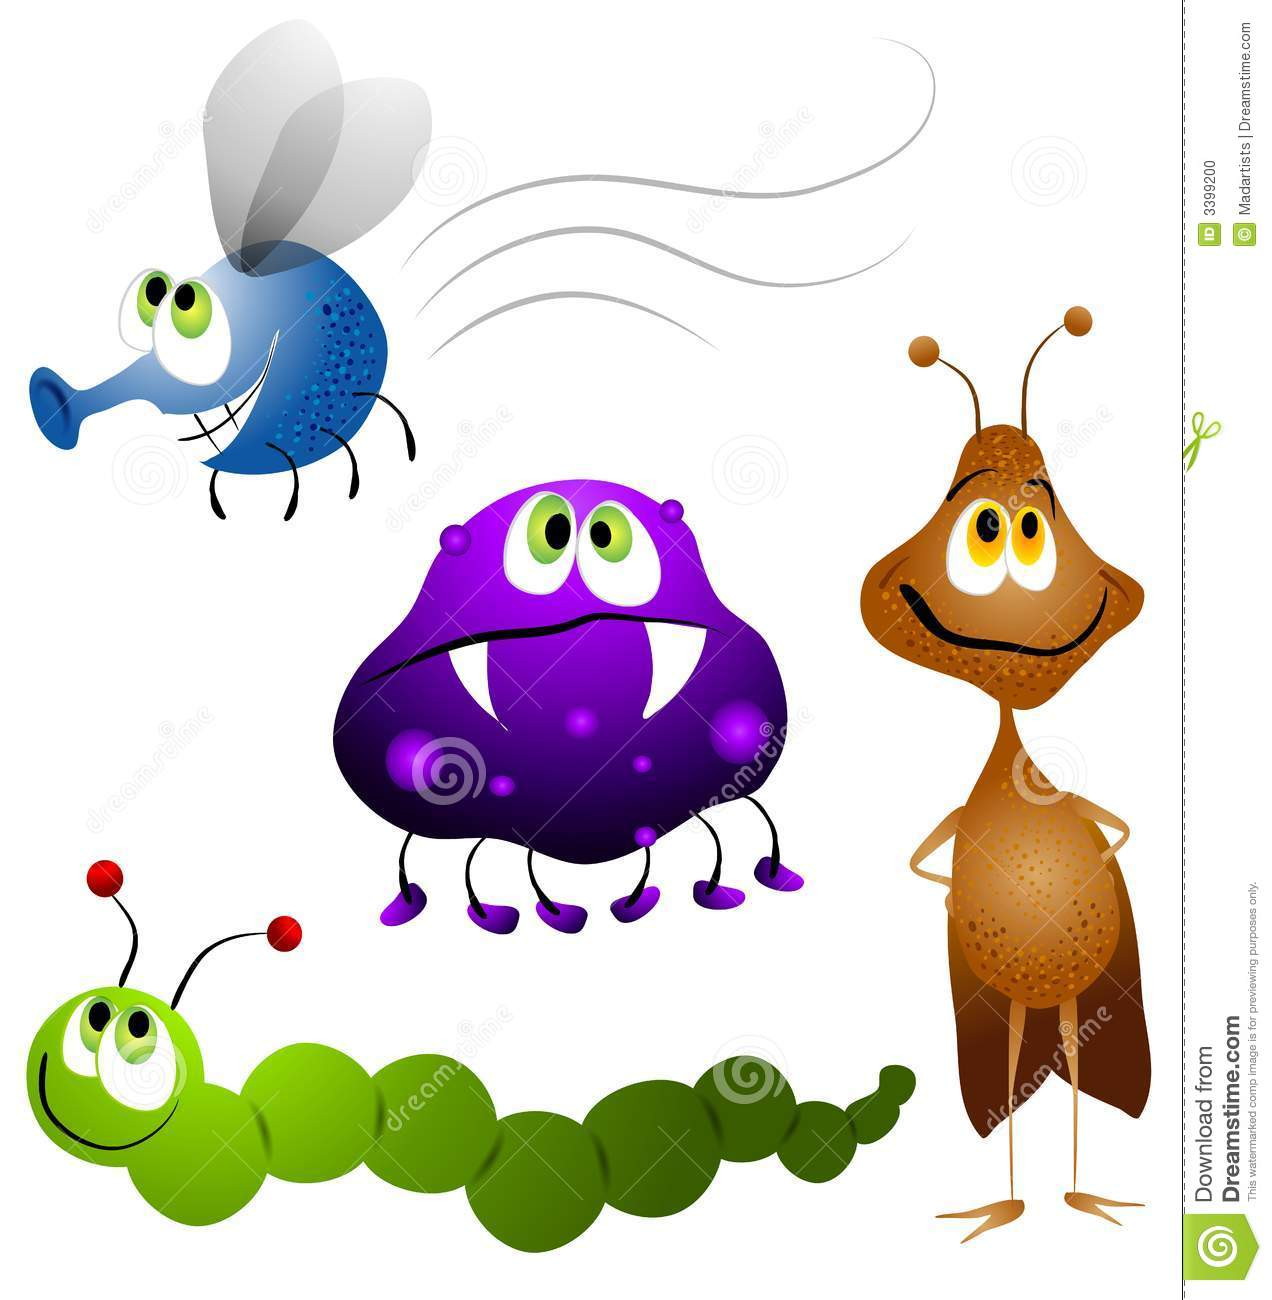 ugly cartoon bugs insects stock illustration illustration of rh dreamstime com insect clip art border insects clipart